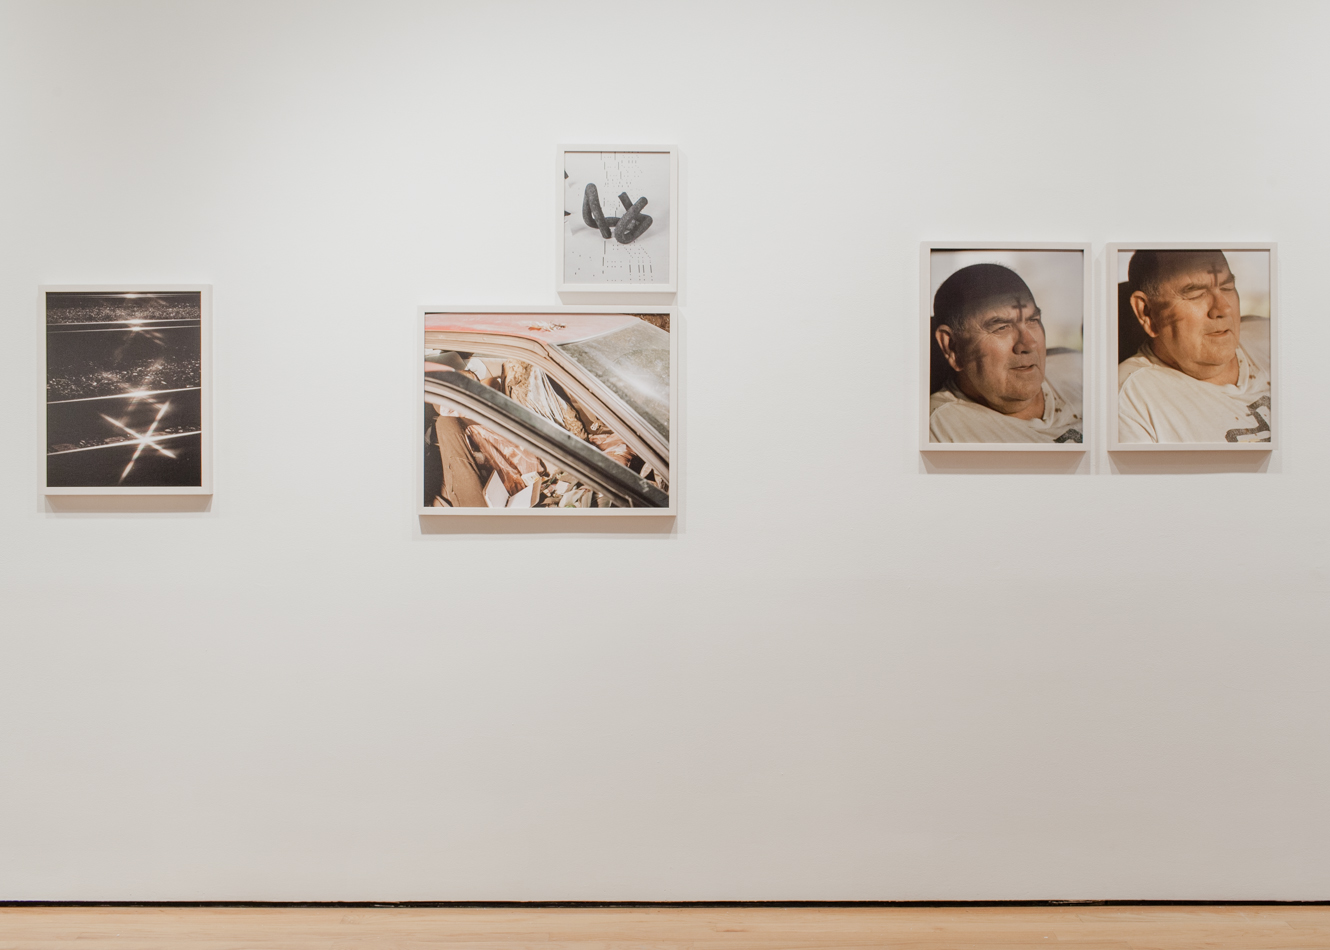 """Figure 15, Daniel Shea, """"Blisner, Ill"""". Installation at Museum of Contemporary Photography, Chicago, Il. Photographic Prints, 2012. Care of the artist"""